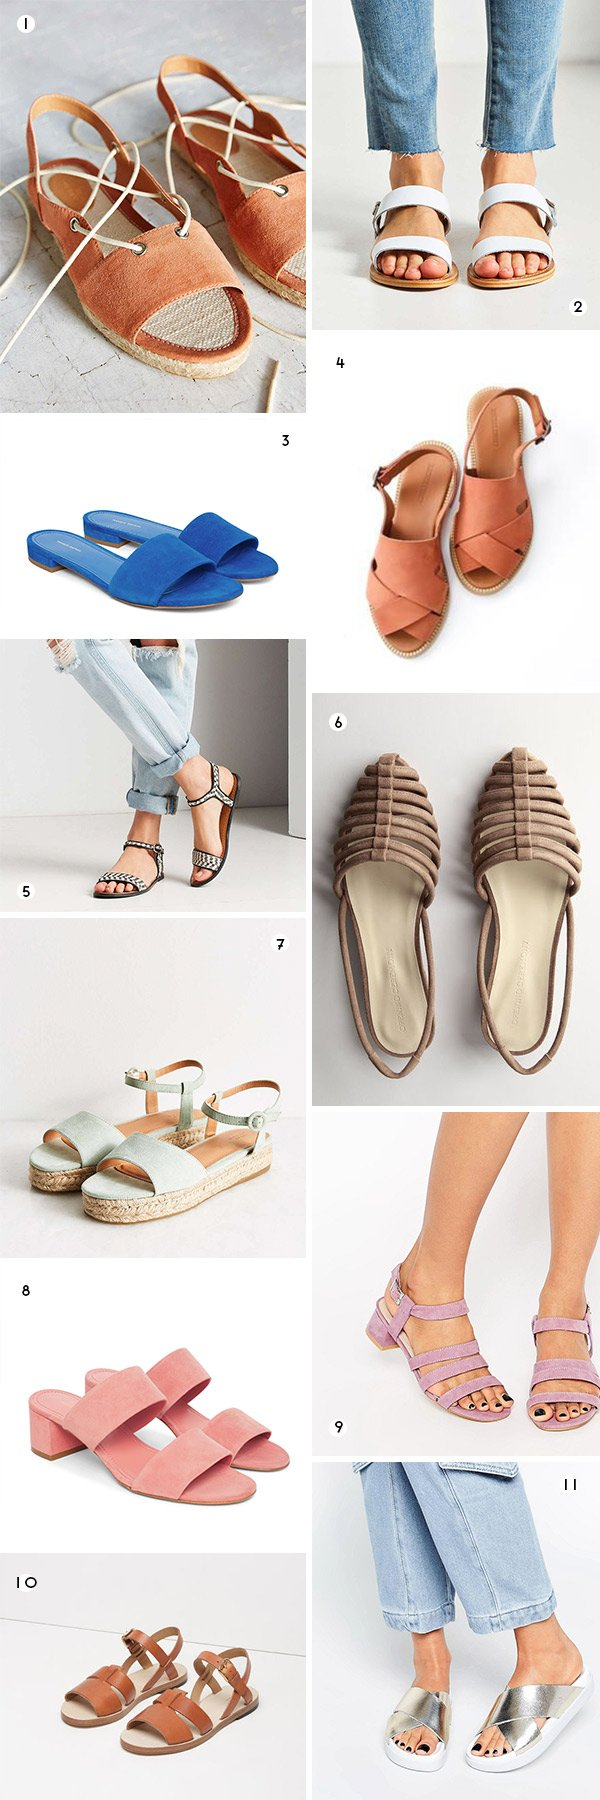 11 awesome sandals for summer!